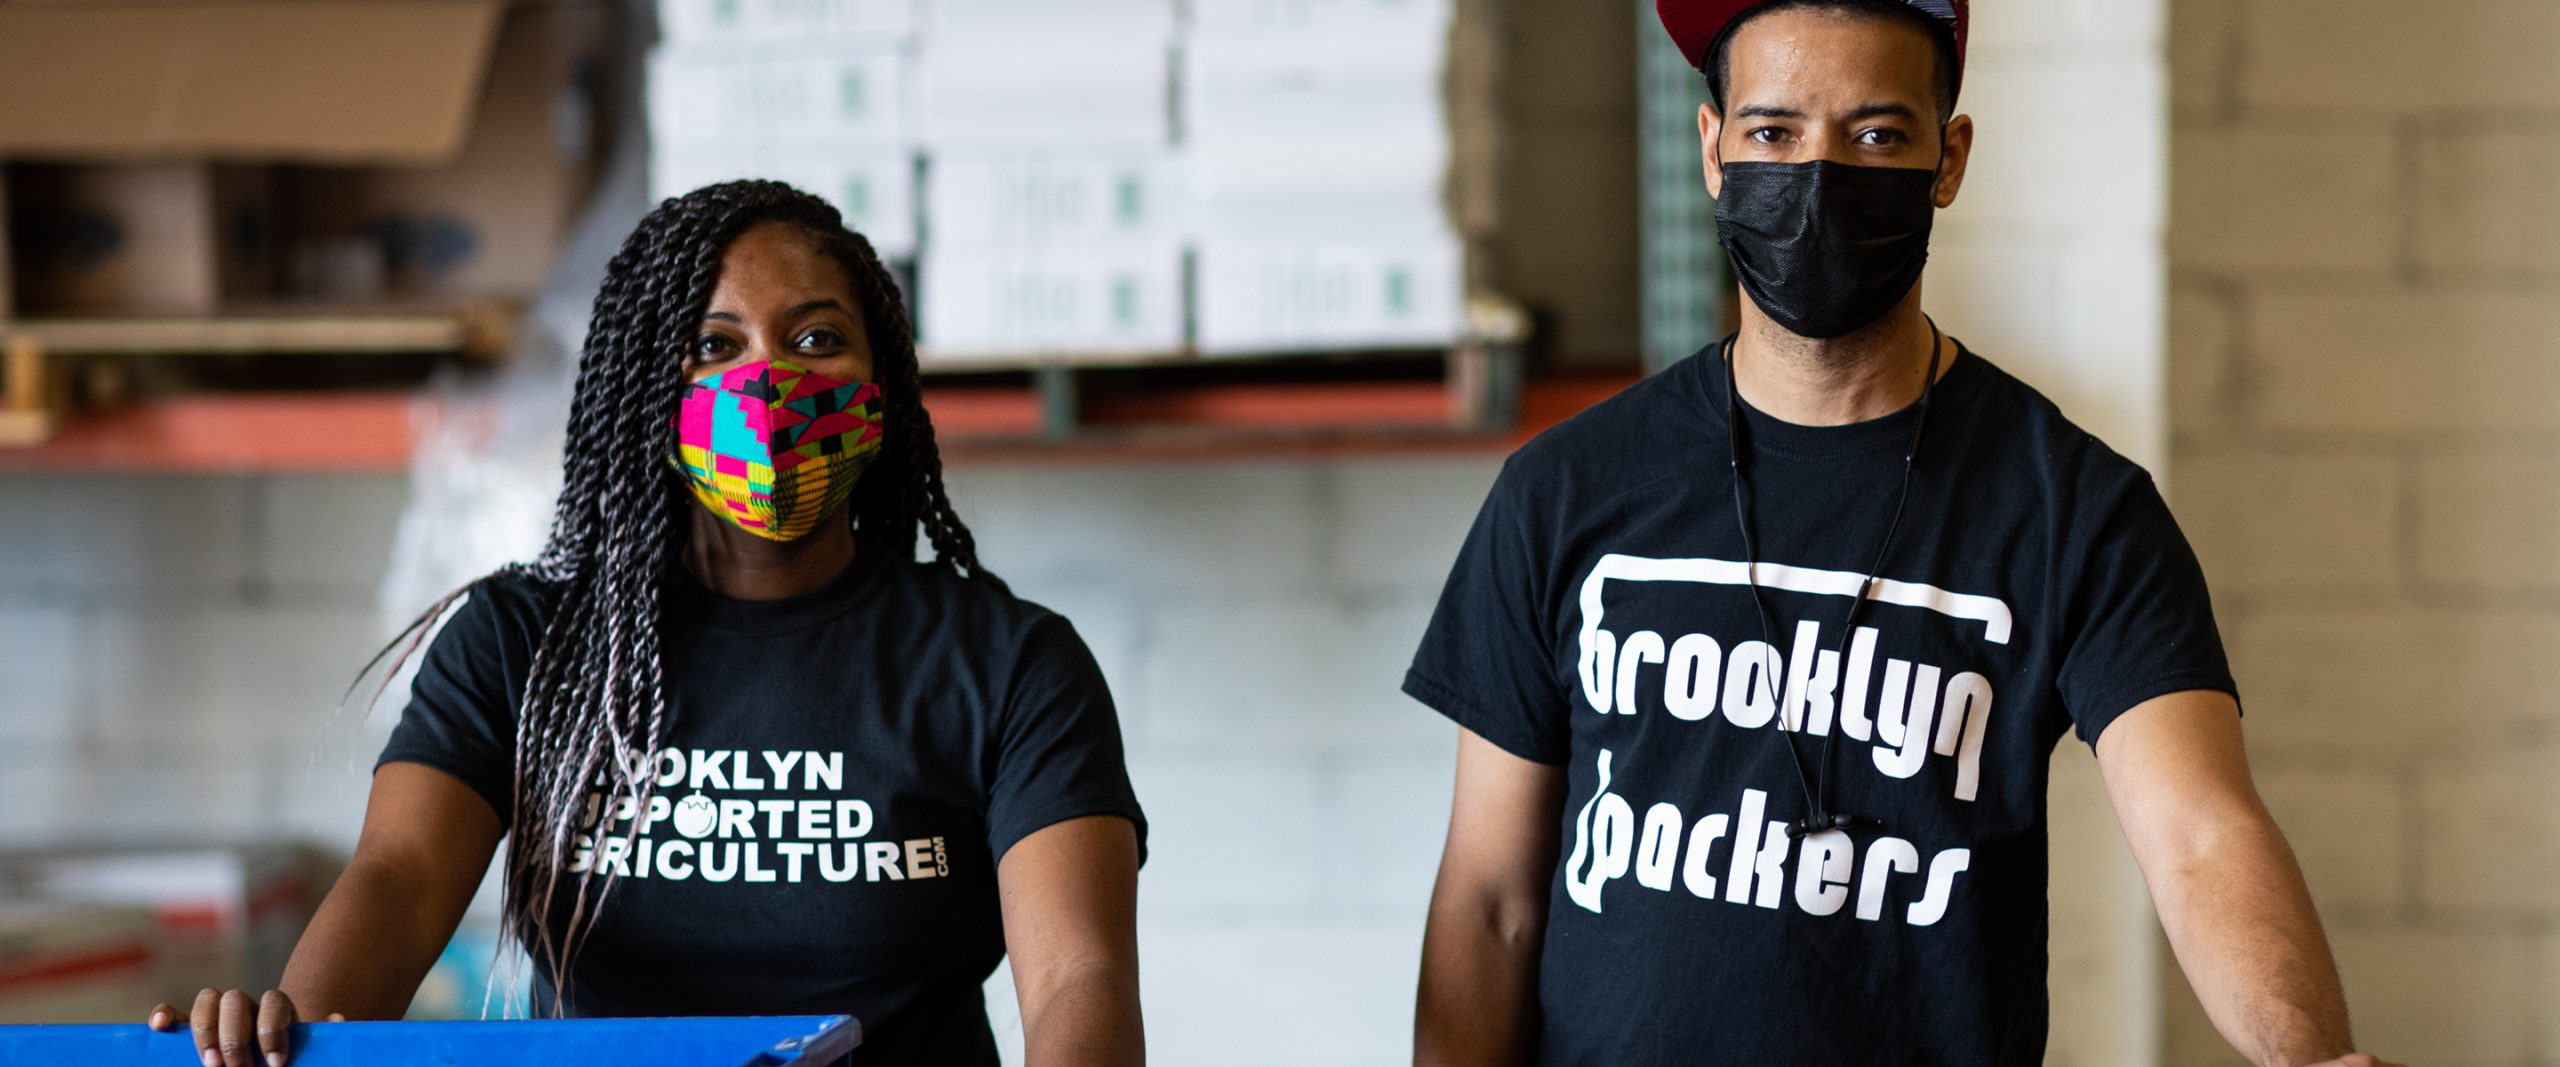 Inside a Worker-Owned Cooperative: Brooklyn Packers' Alternative Economy